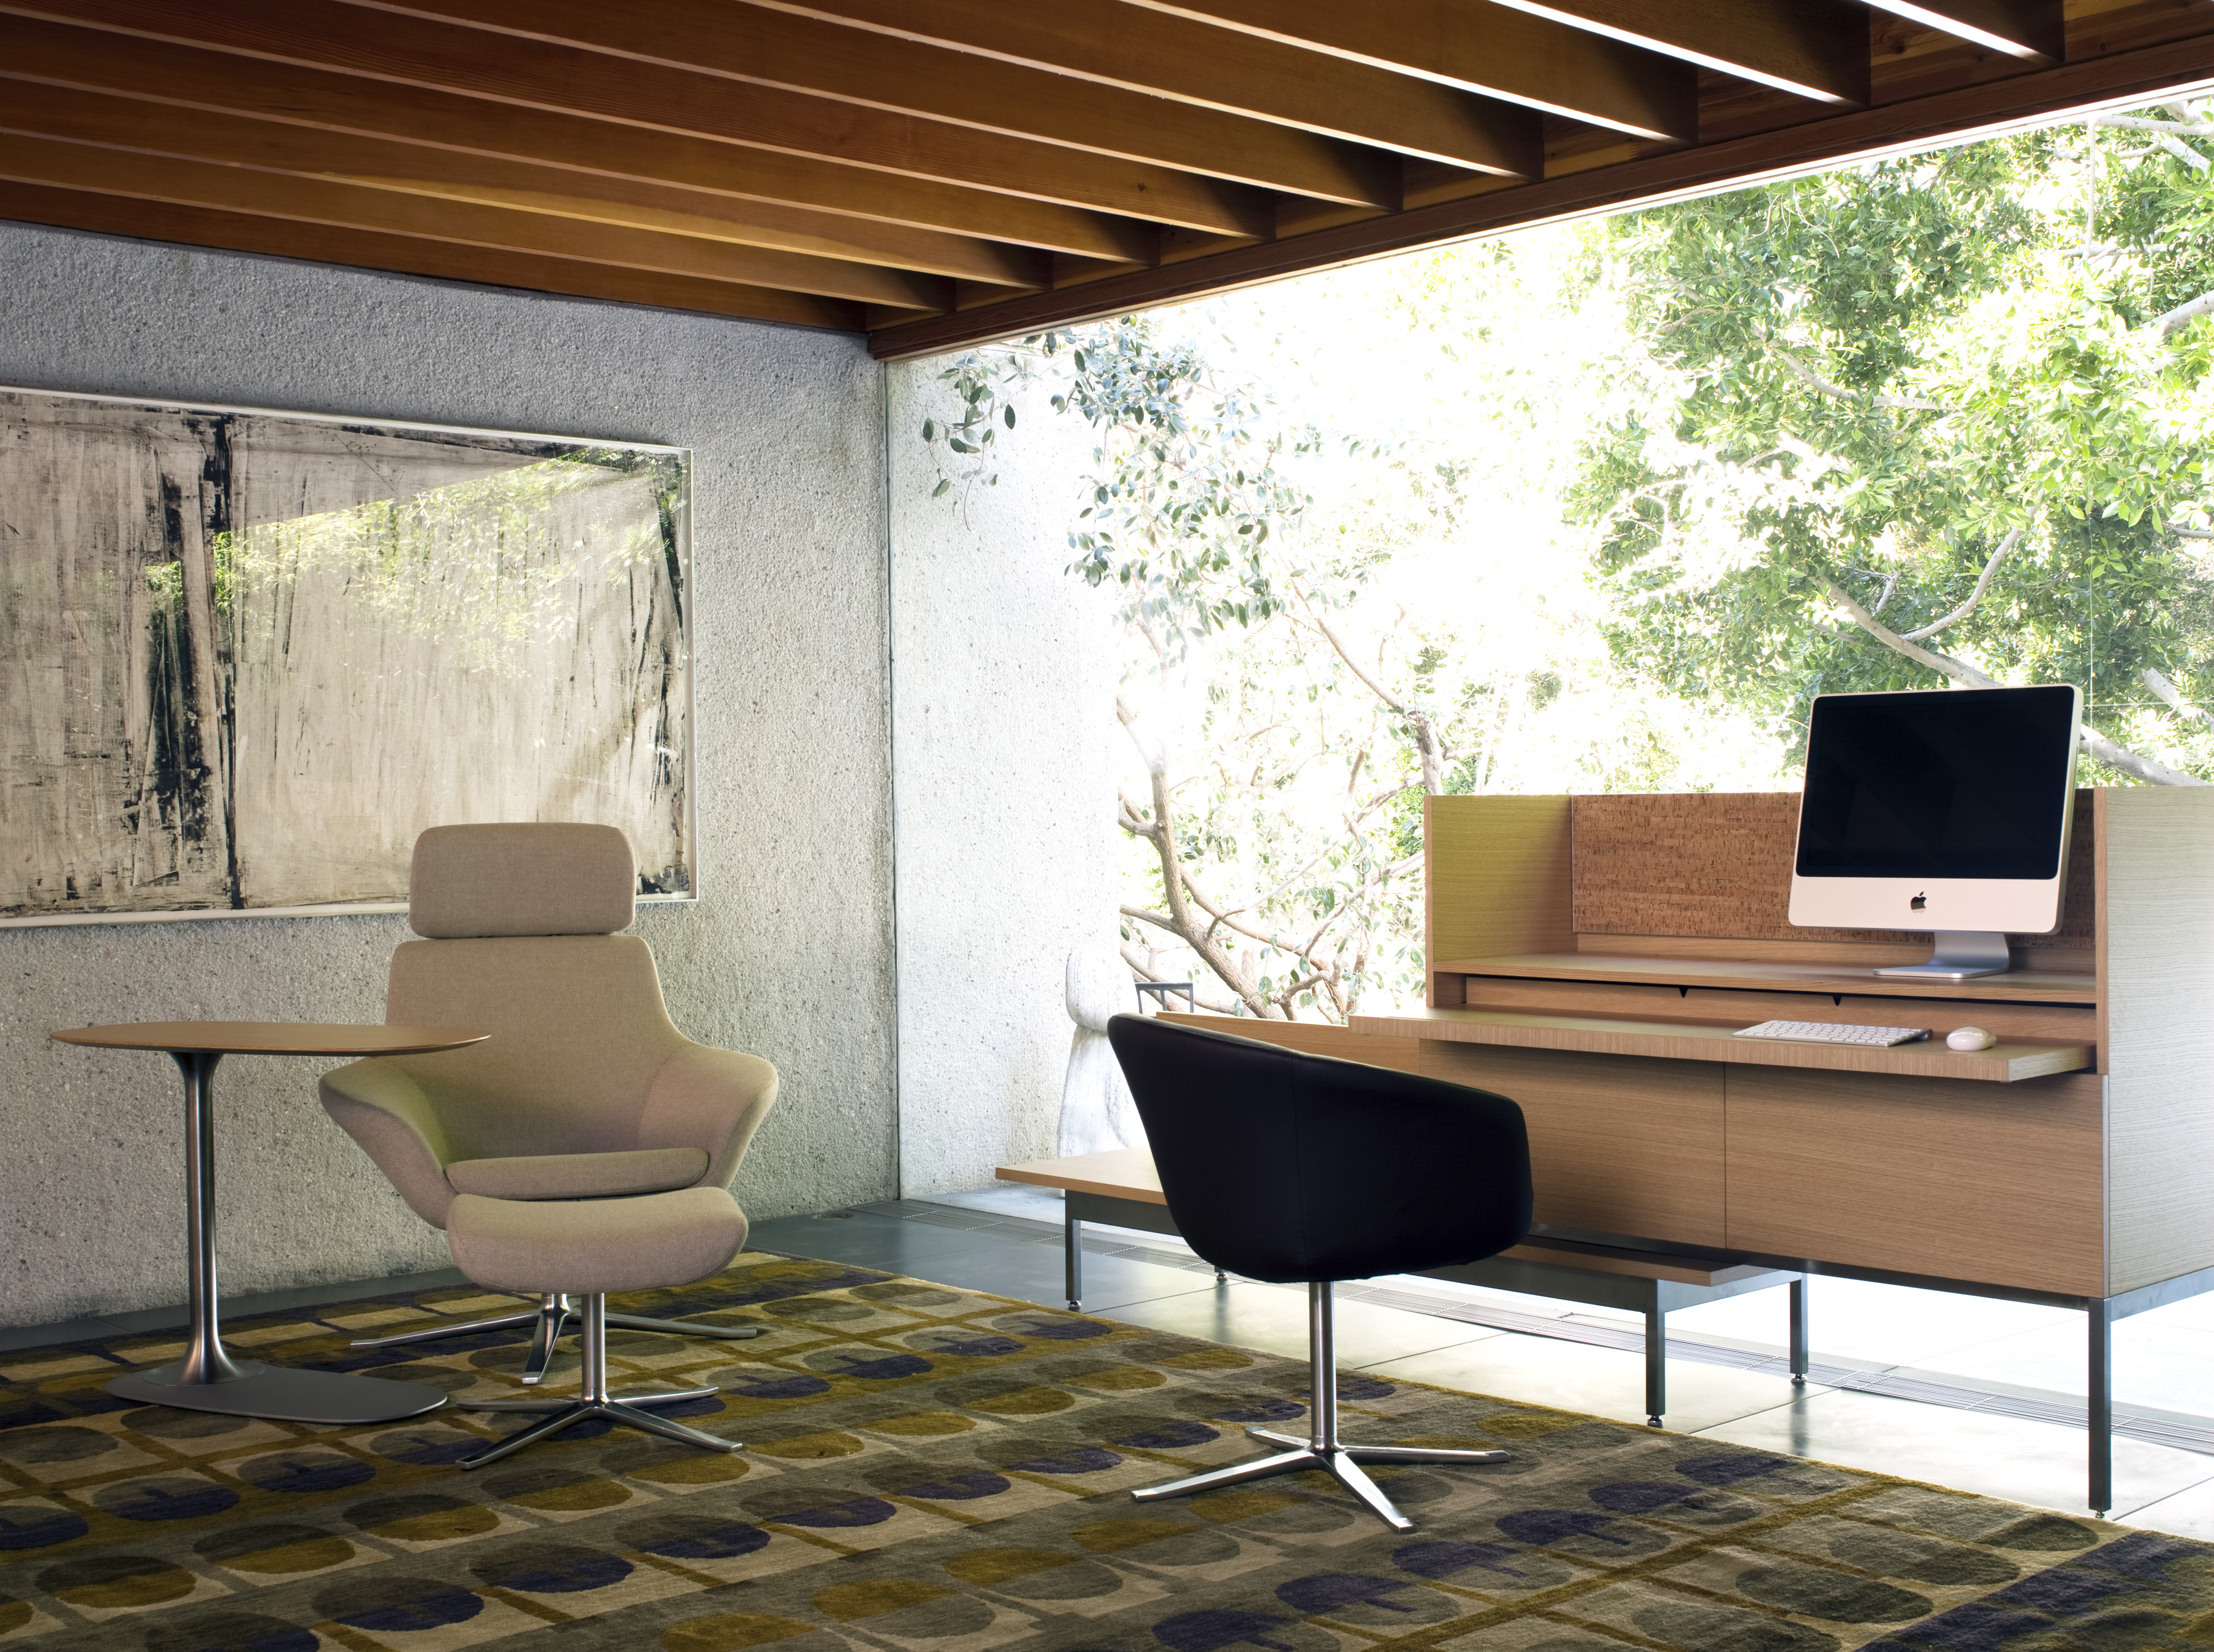 Bob Lounge Chair with Bob Chair and Denizen Personal Table and Desking